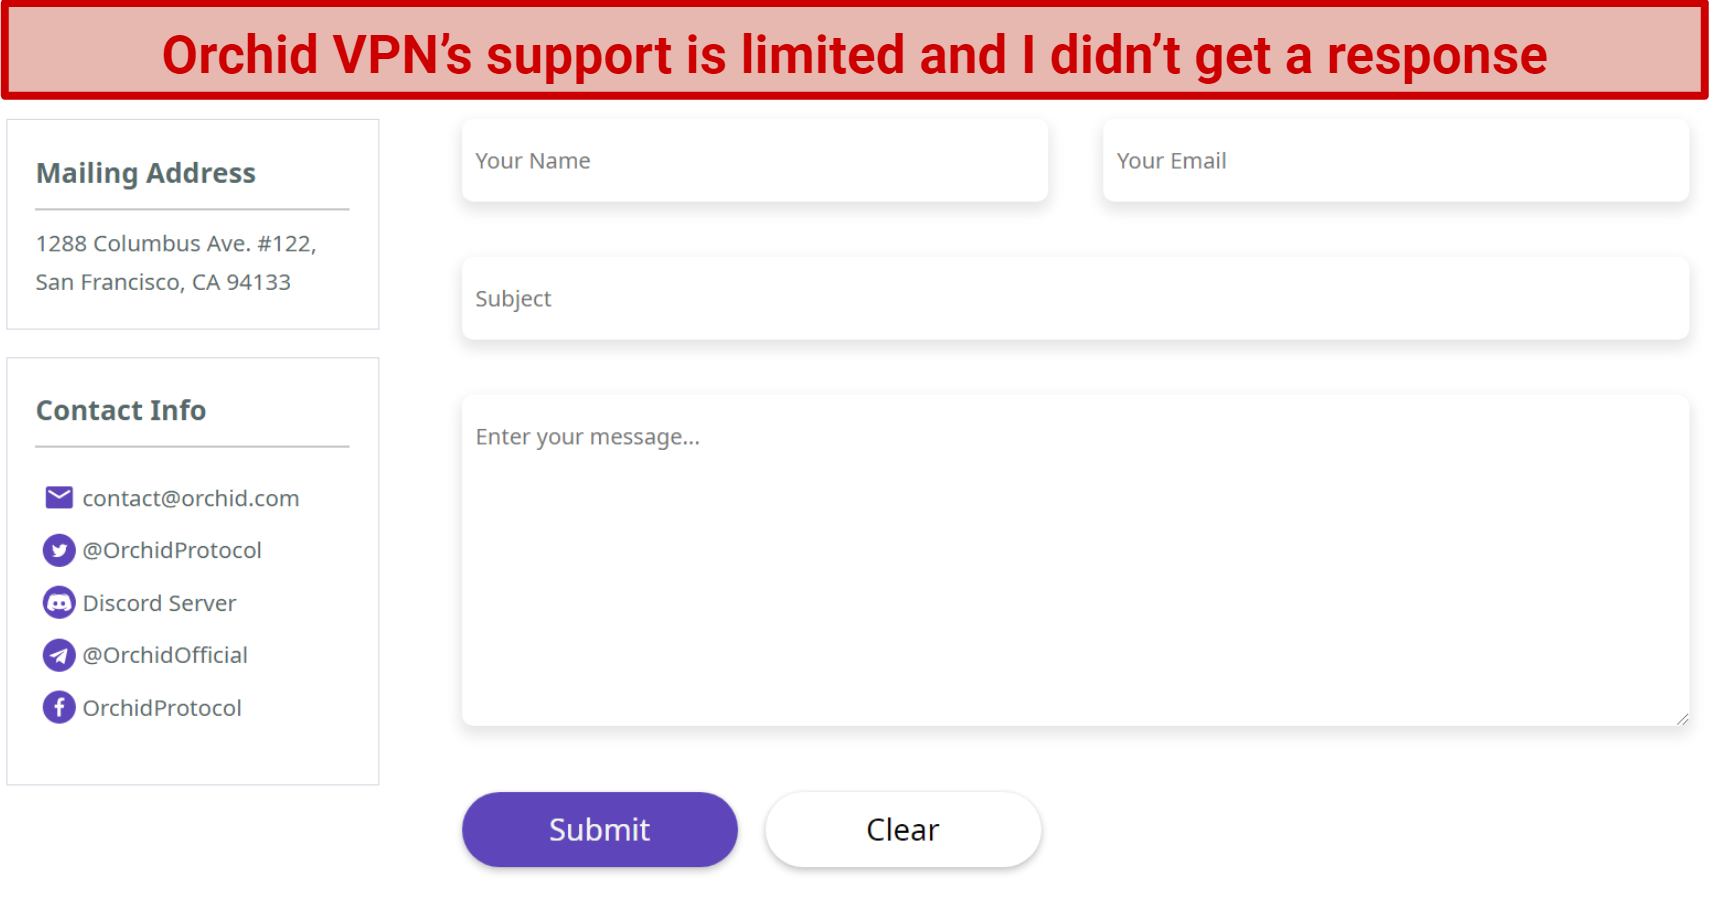 Image showing Orchid VPN support web form